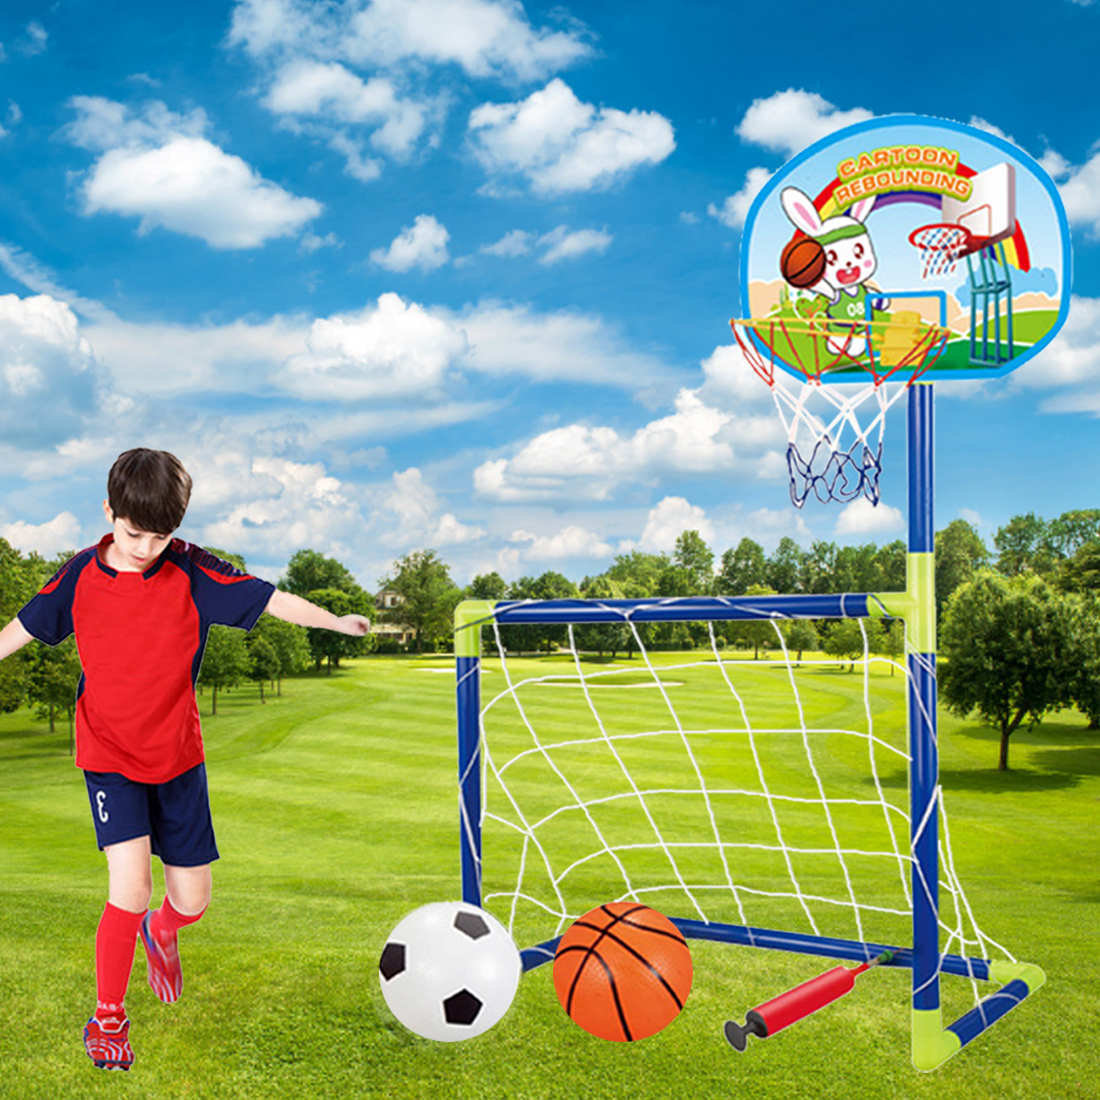 Surwish 2018 Summer Sports Portable Collapsible Football Kit 2-In-1 Kids Basketball Backboard Soccer Goal Set Training Toy